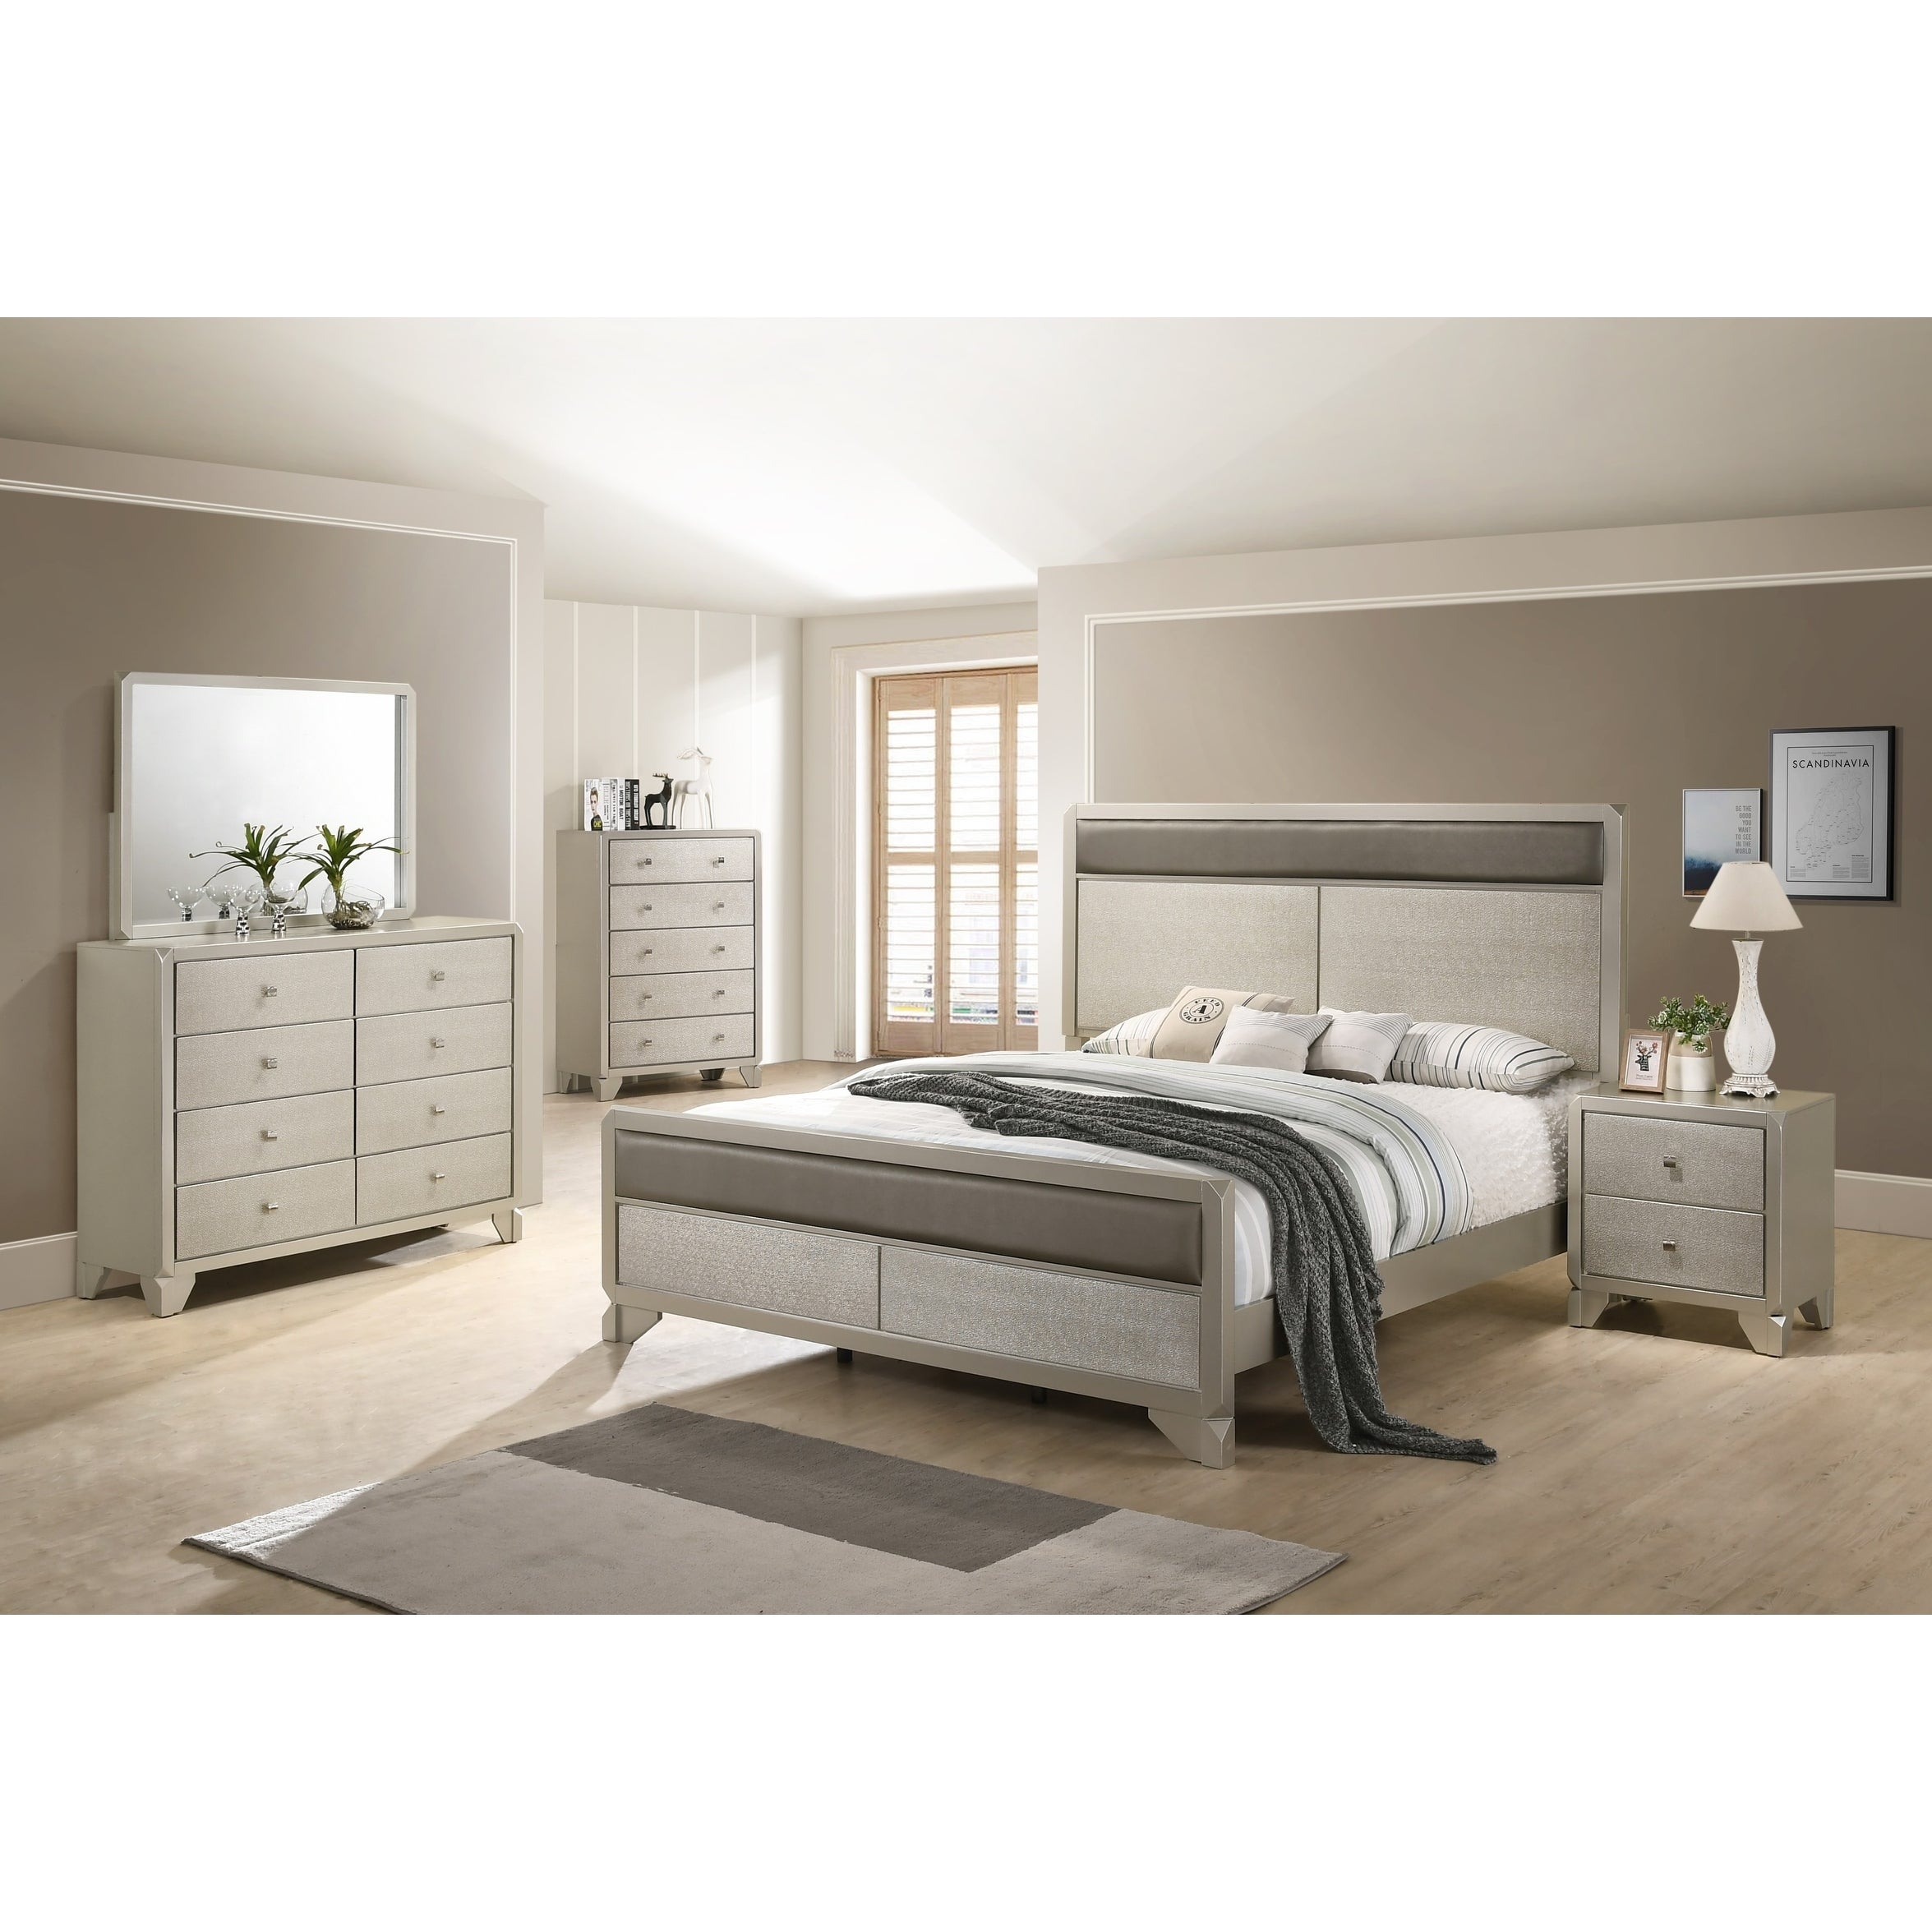 Keila Contemporary Champagne Silver Wood 5 PC Bedroom Set, Queen